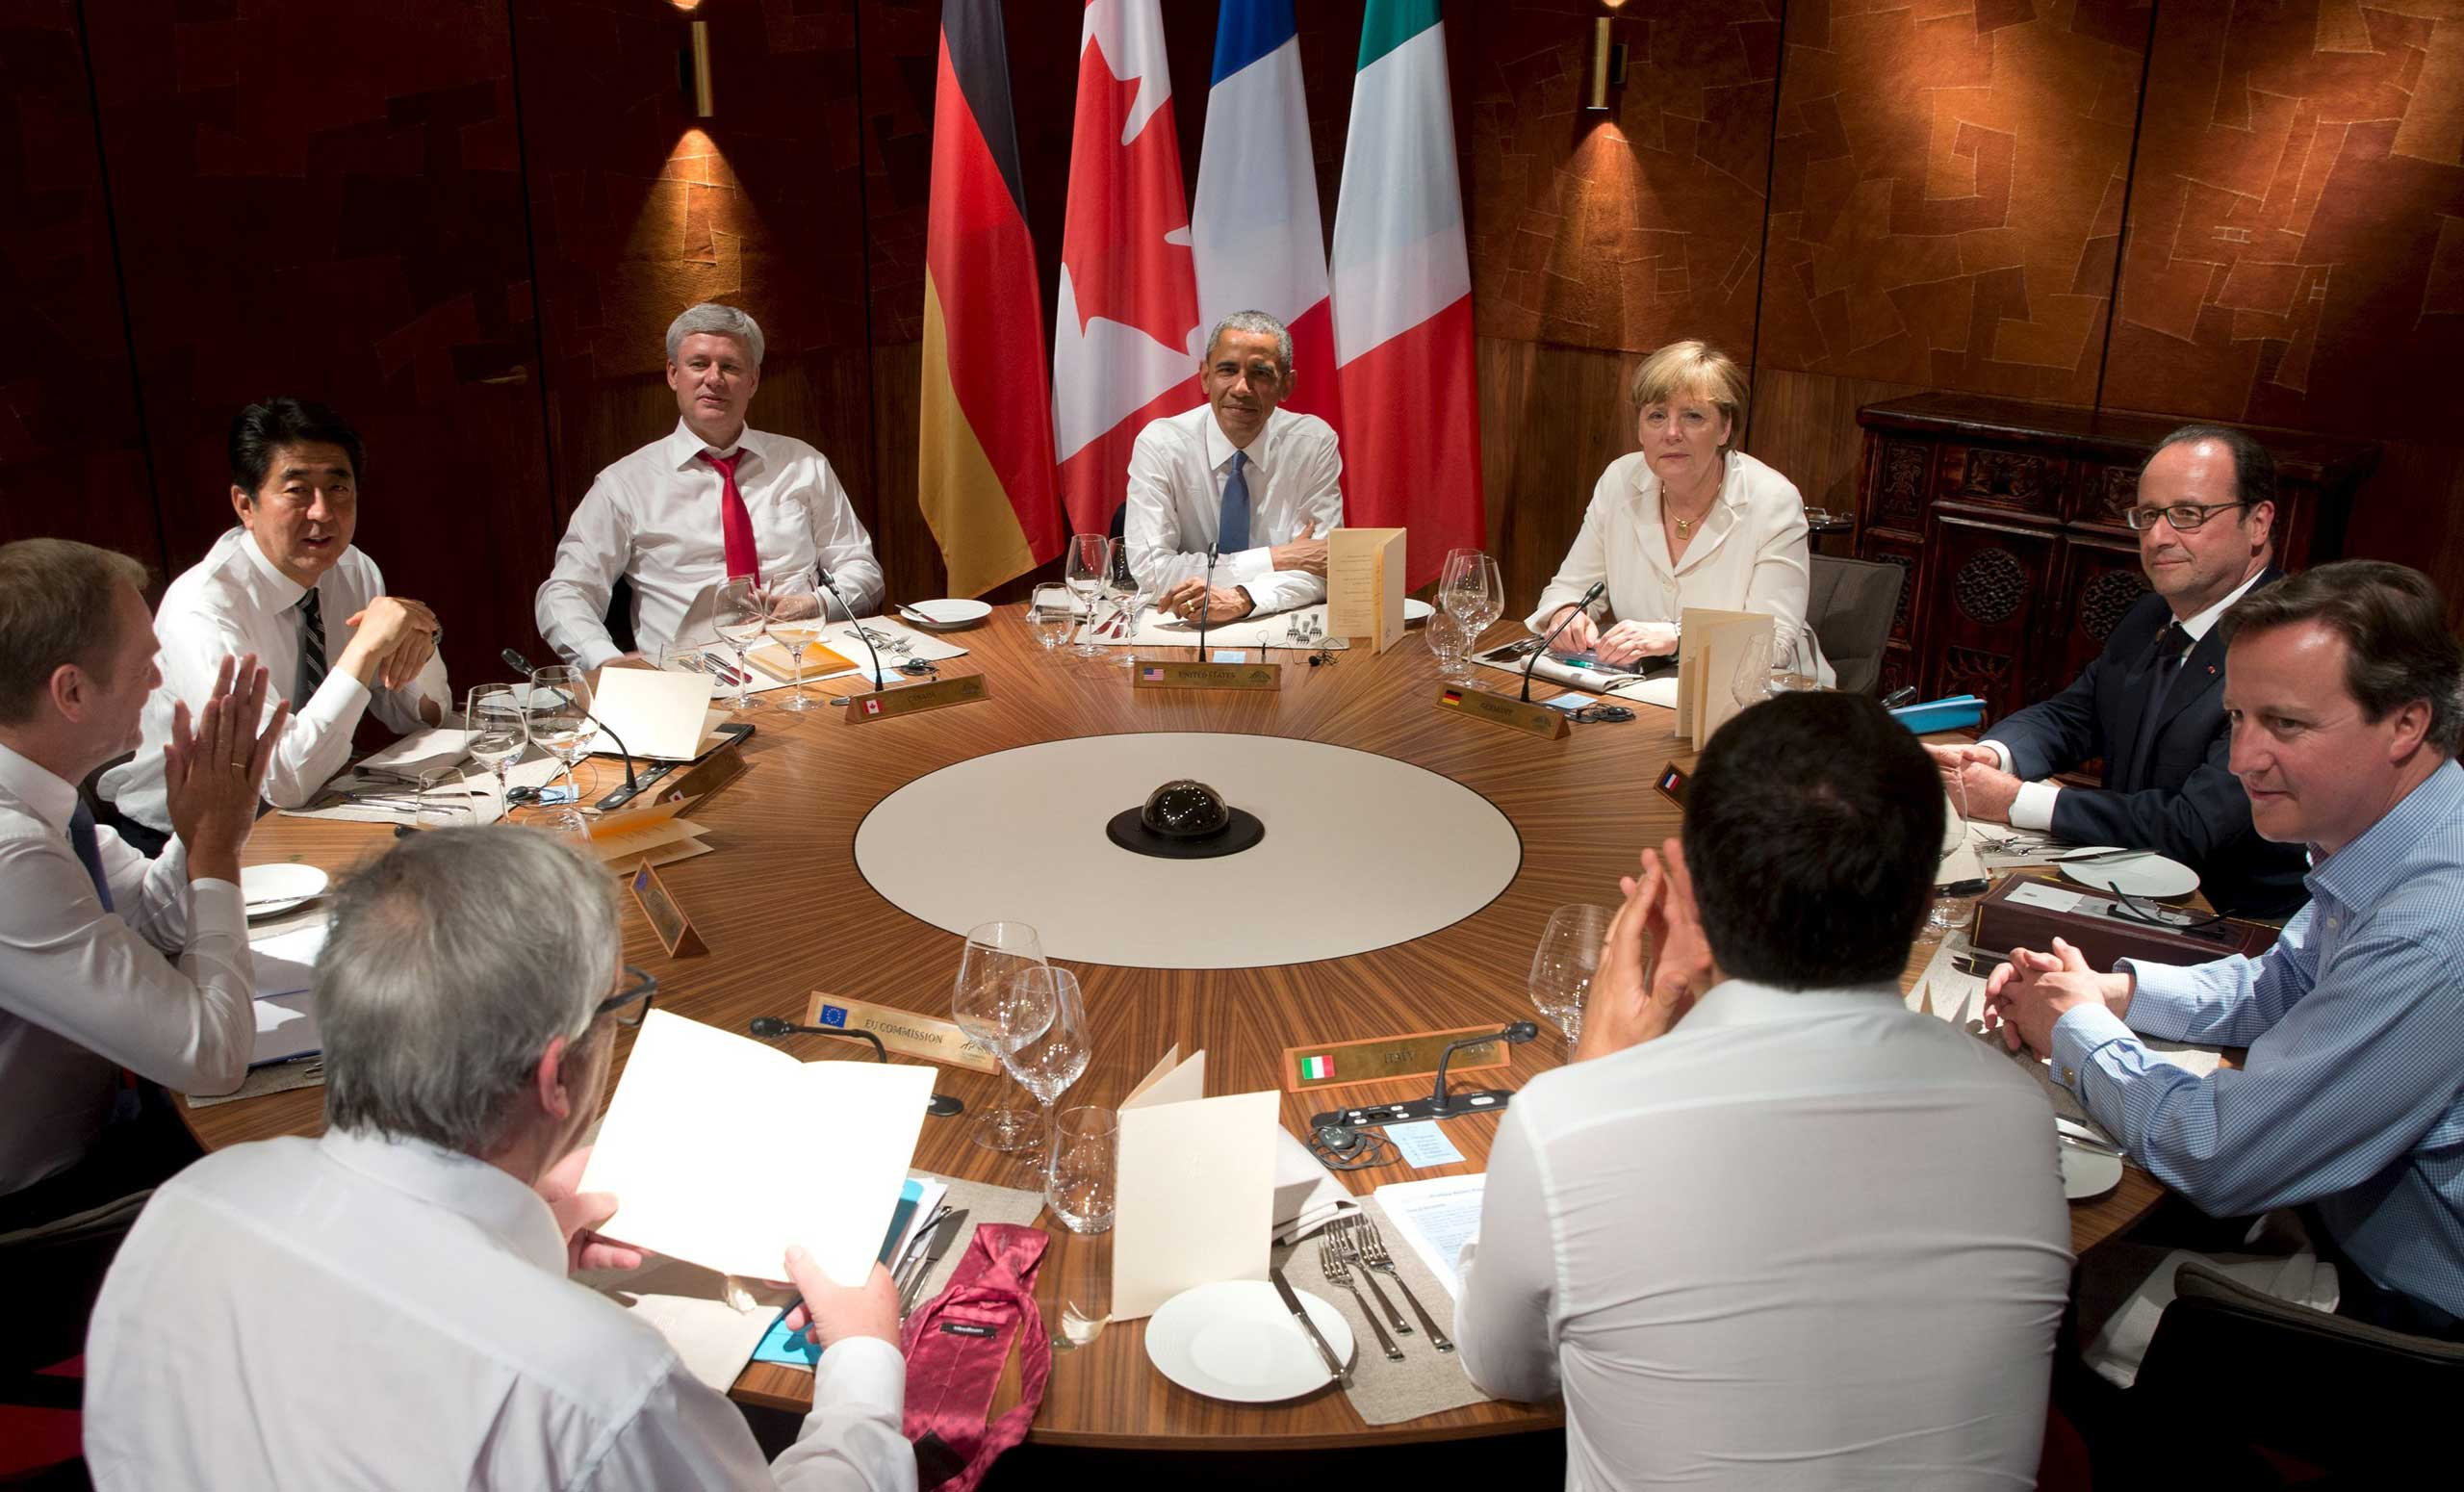 Leaders from the Group of Seven (G7) industrial nations hold a working dinner in the Bavarian village of Kruen, Germany, on June 7, 2015.